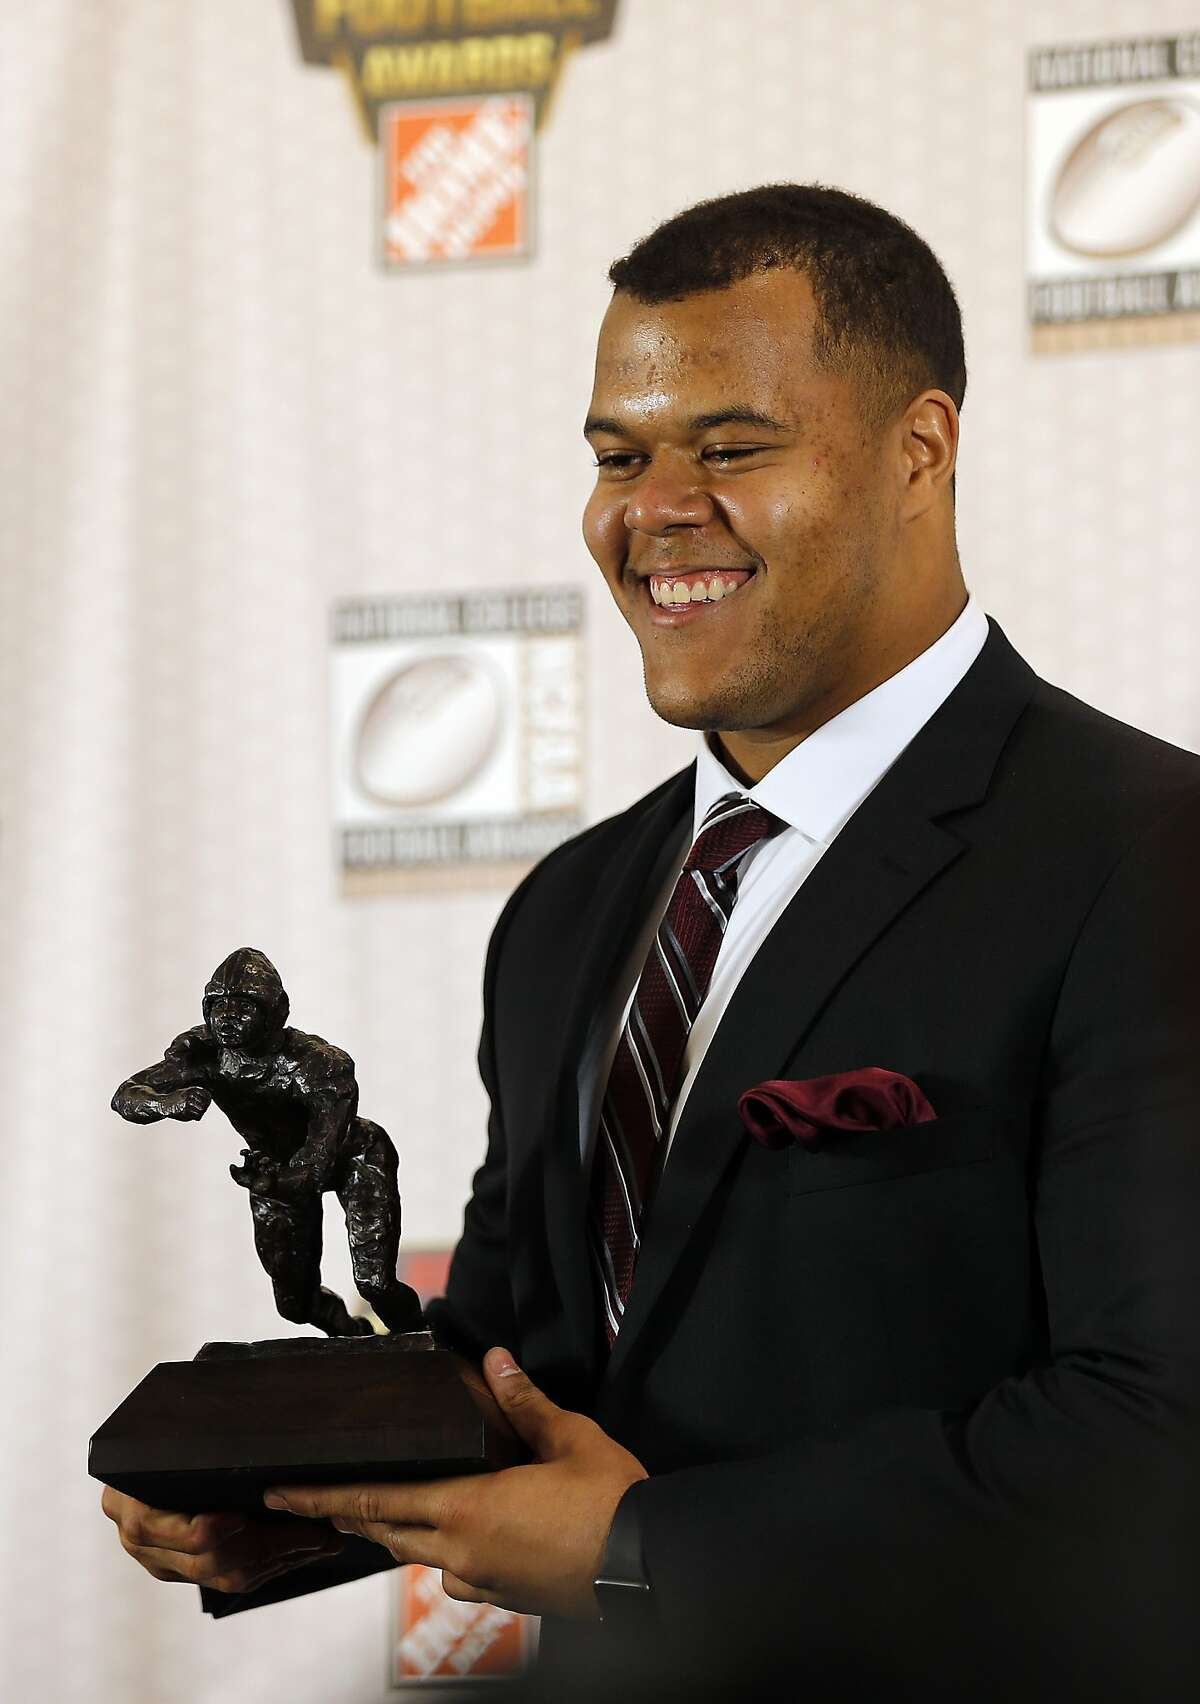 Stanford's Joshua Garnett poses after winning the Outland trophy for the being the nation's best interior lineman at the College Football Hall of Fame , Thursday, Dec. 10, 2015, in Atlanta. (AP Photo/John Bazemore)